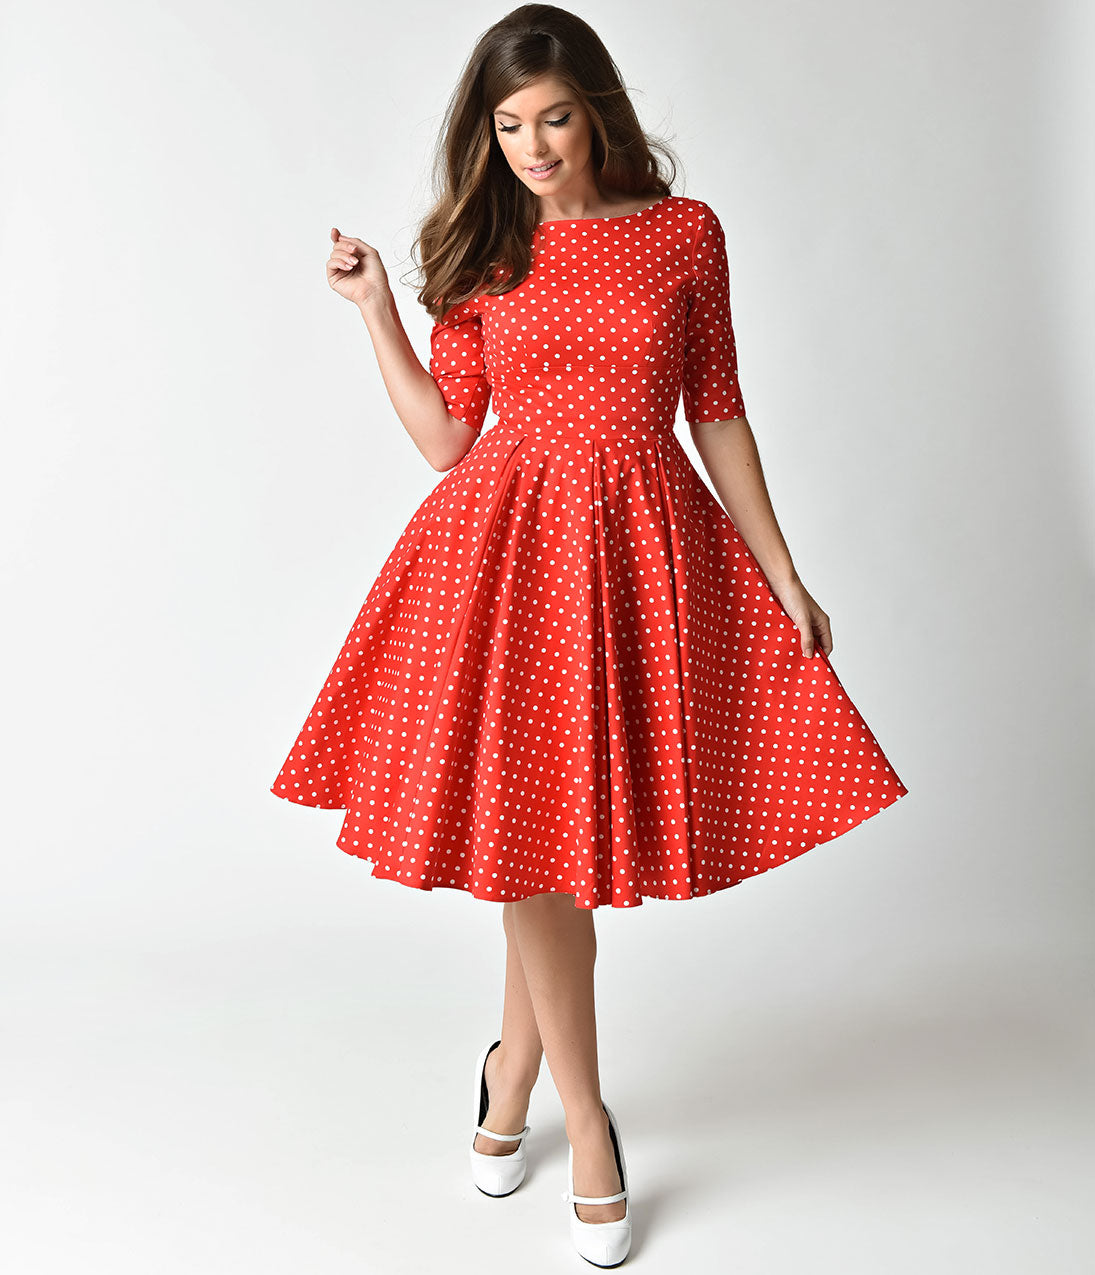 Vintage Polka Dot Dresses – 50s Spotty and Ditsy Prints The Pretty Dress Company Red  White Dot Sleeved Hepburn Swing Dress $142.00 AT vintagedancer.com